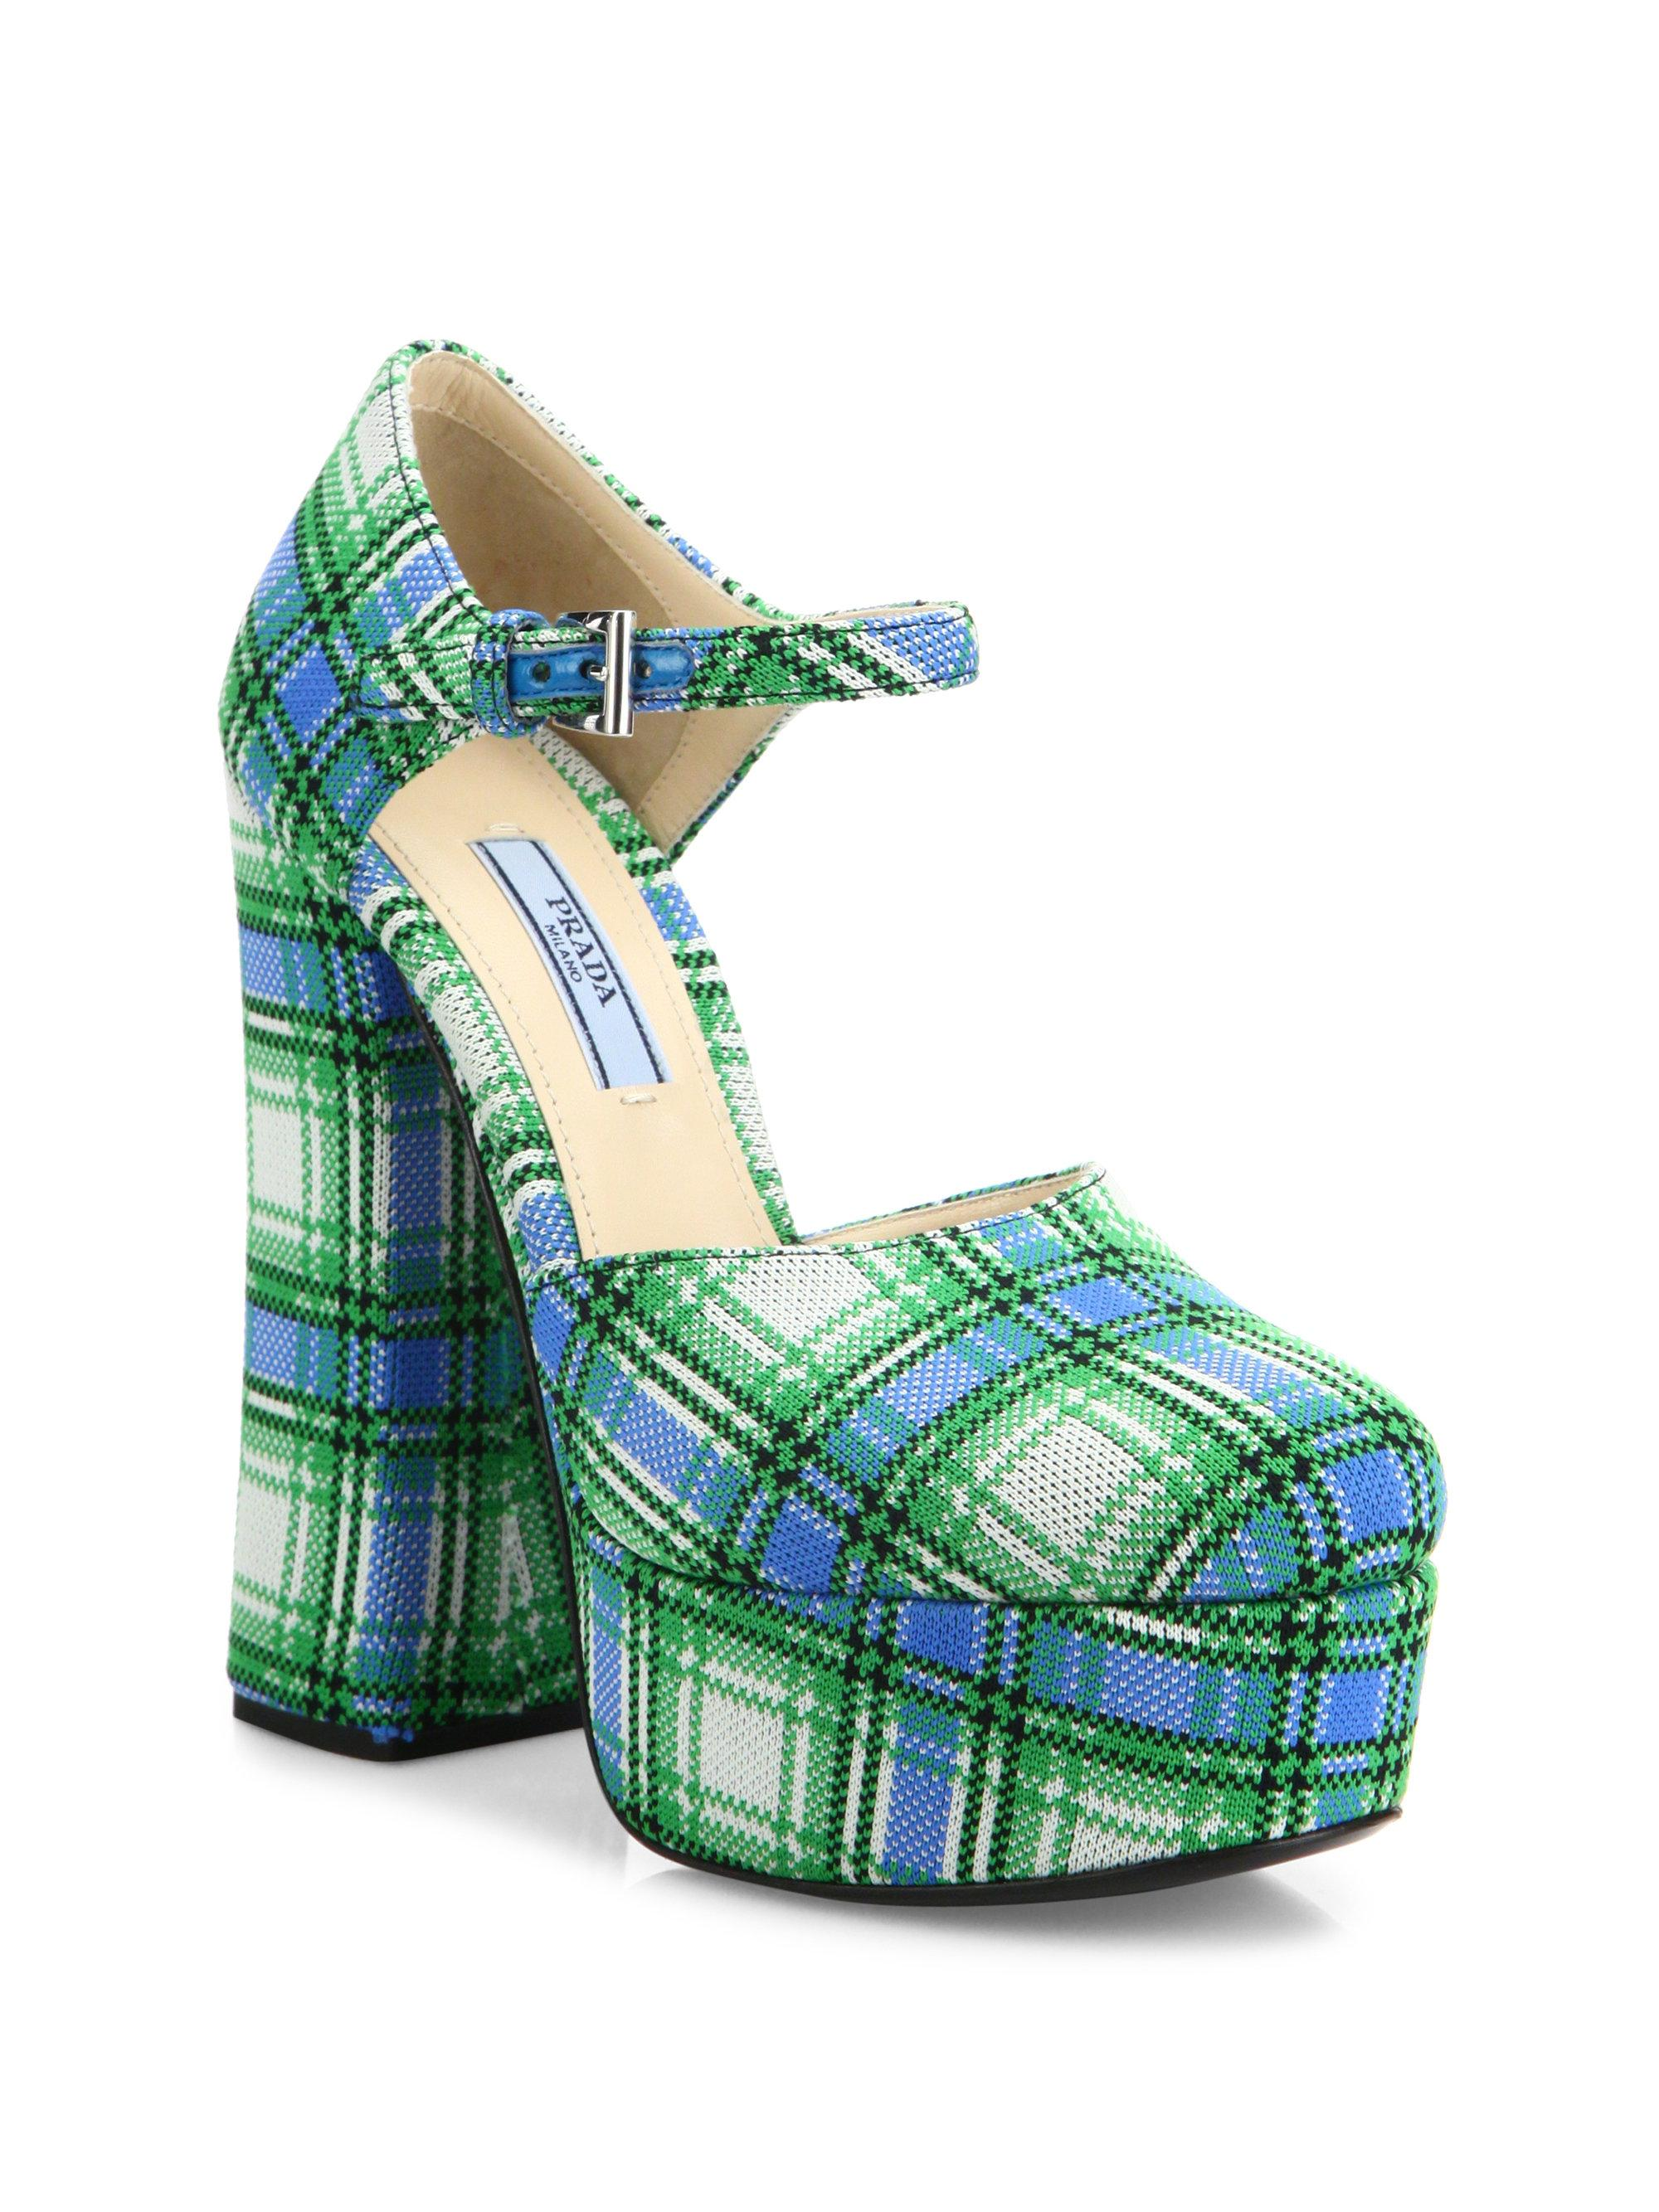 3eb89a6837e9 Lyst - Prada Plaid Ankle-strap Platform Pumps in Green